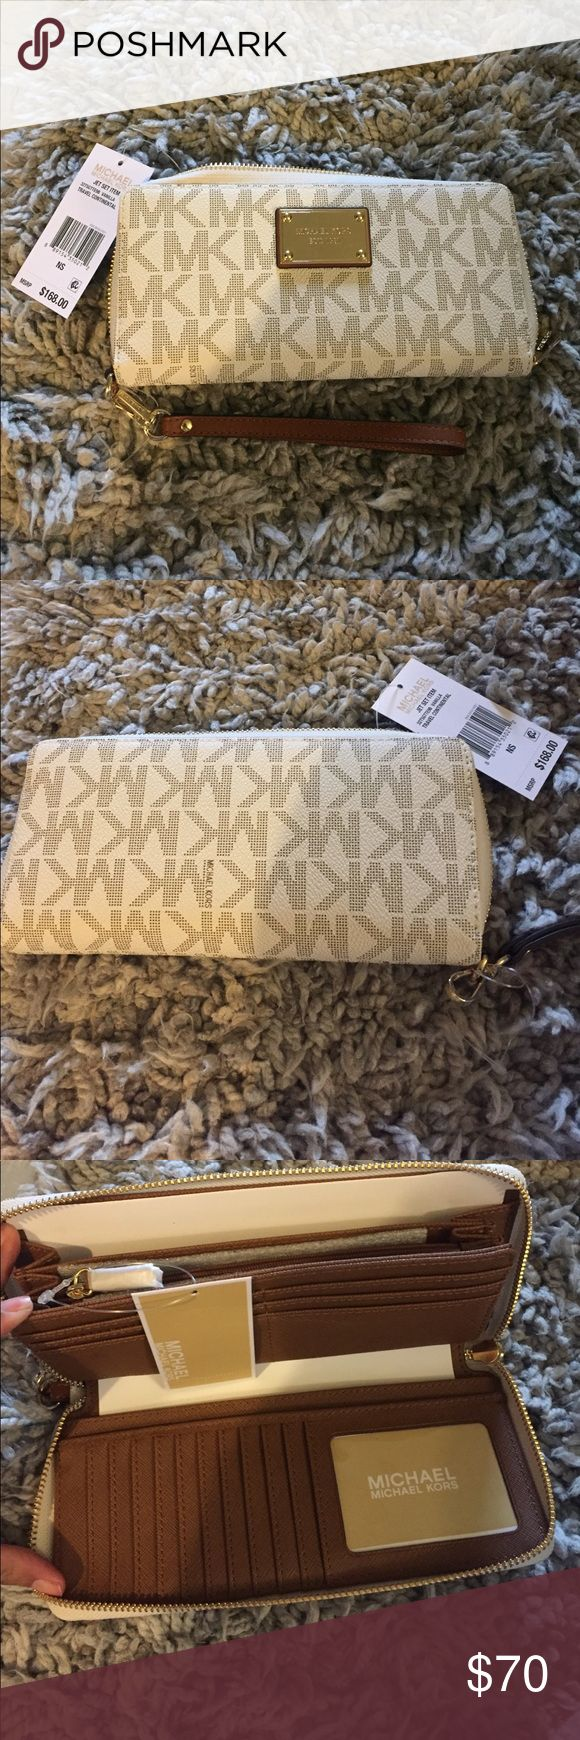 Michael Kors vanilla travel continental wallet Authentic Michael Kors vanilla travel continental wallet Michael Kors Bags Wallets